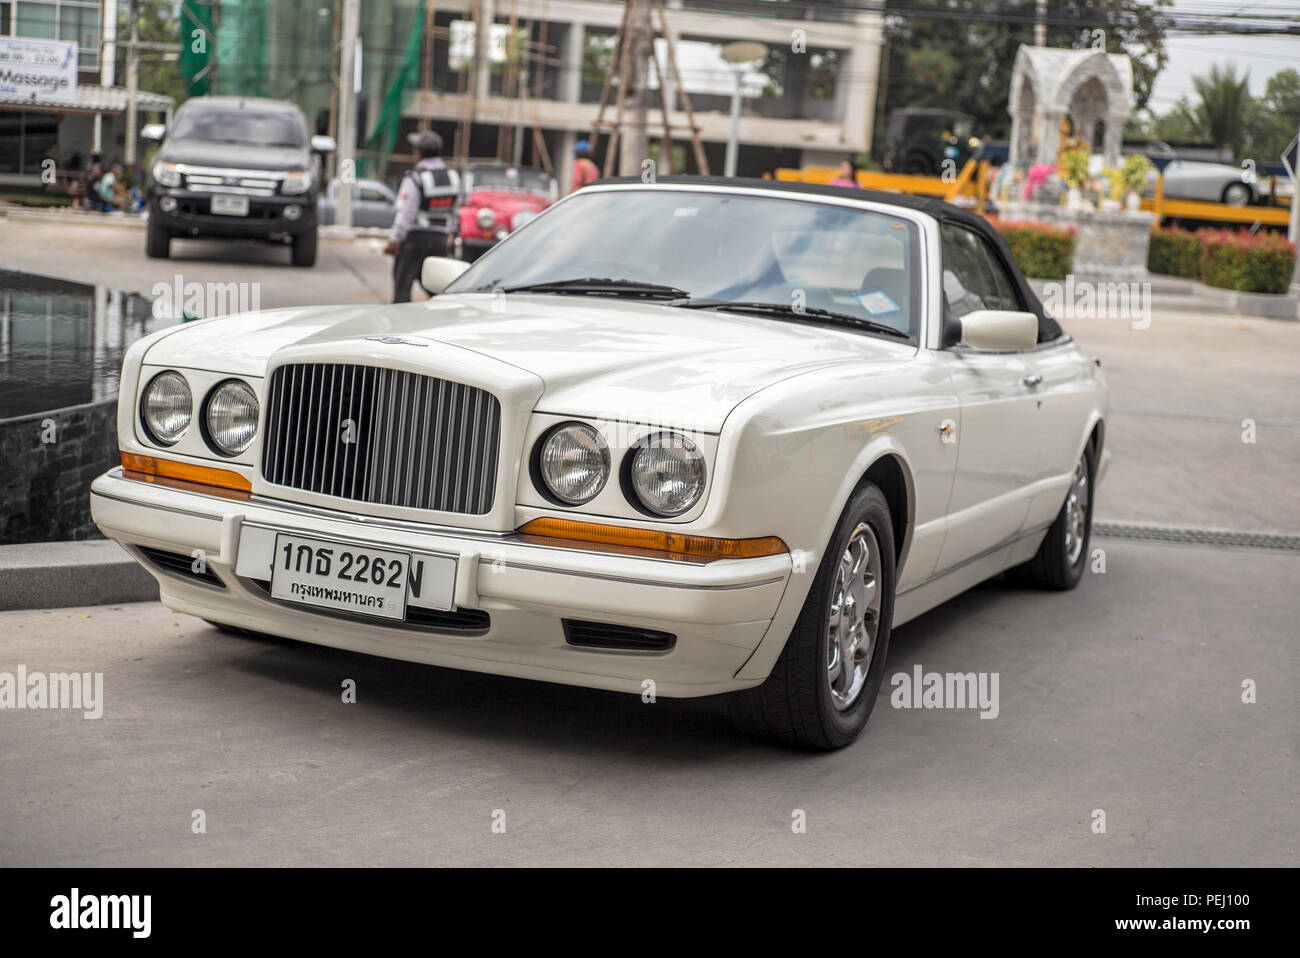 Bentley Azure luxury limousine UK car with Thailand number plate - Stock Image